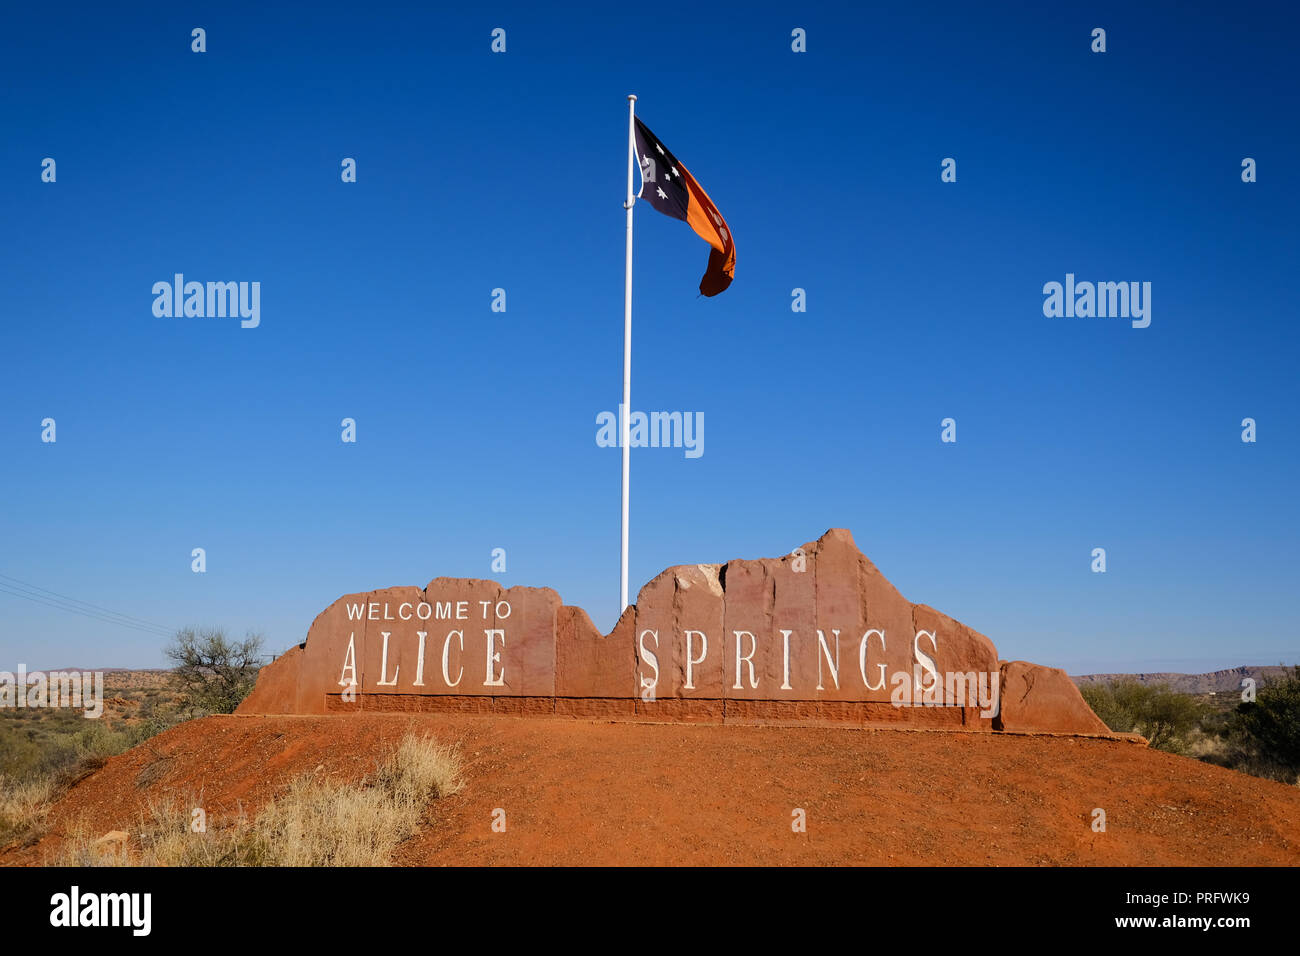 Welcome to Alice Springs, Australia - Stock Image